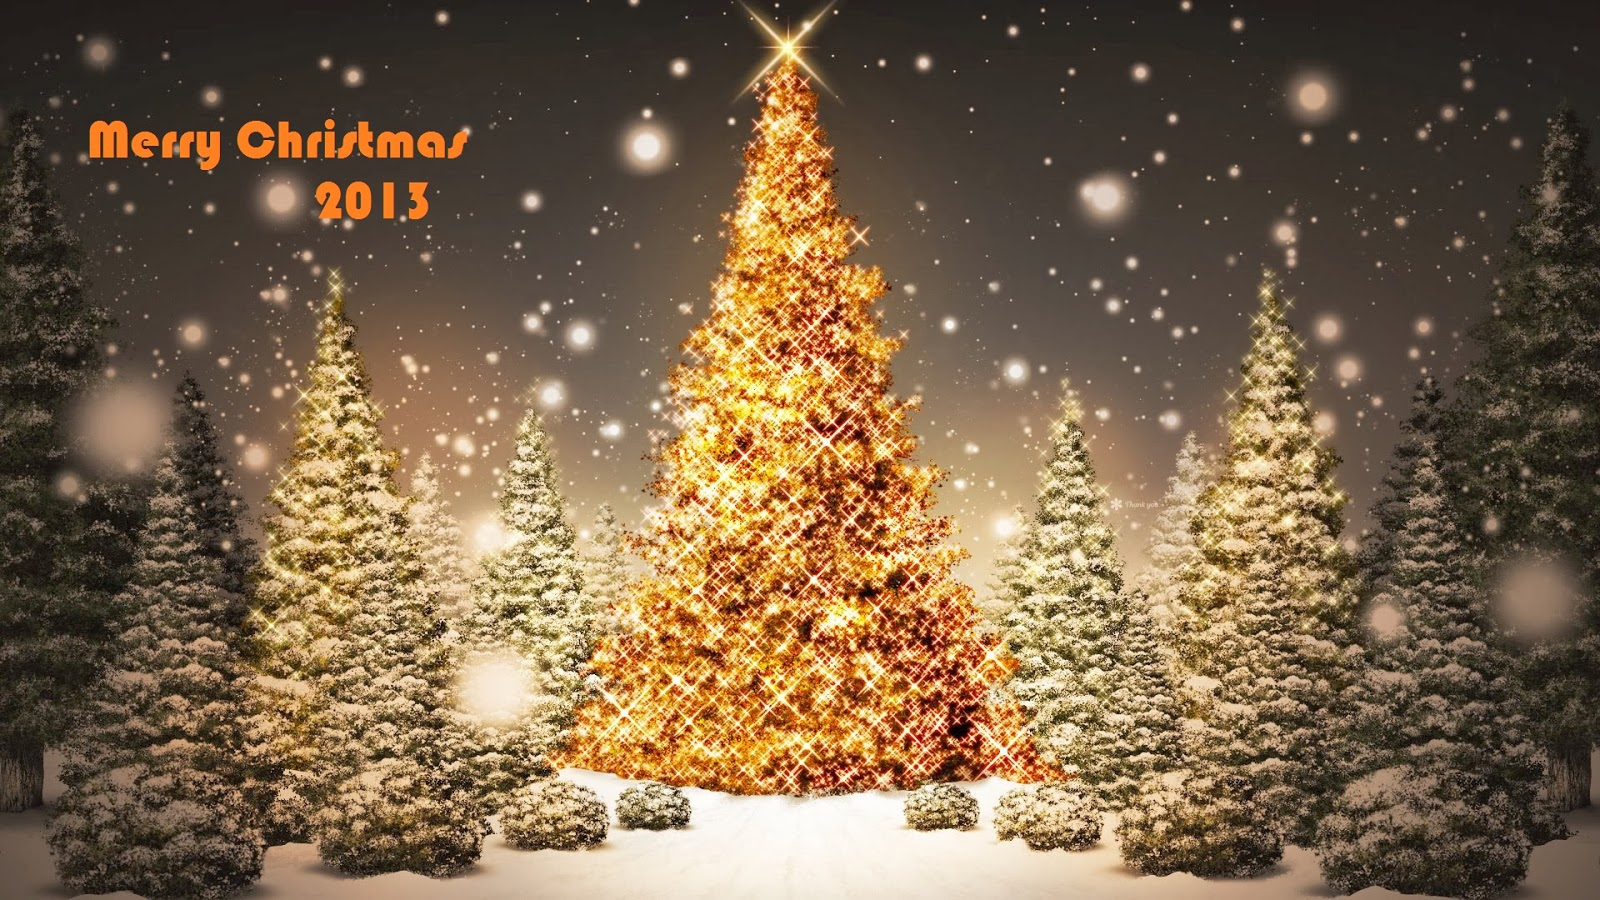 Free Wallpapers Wid Quotes Merry Christmas 2013 Text Sms Songs Movies